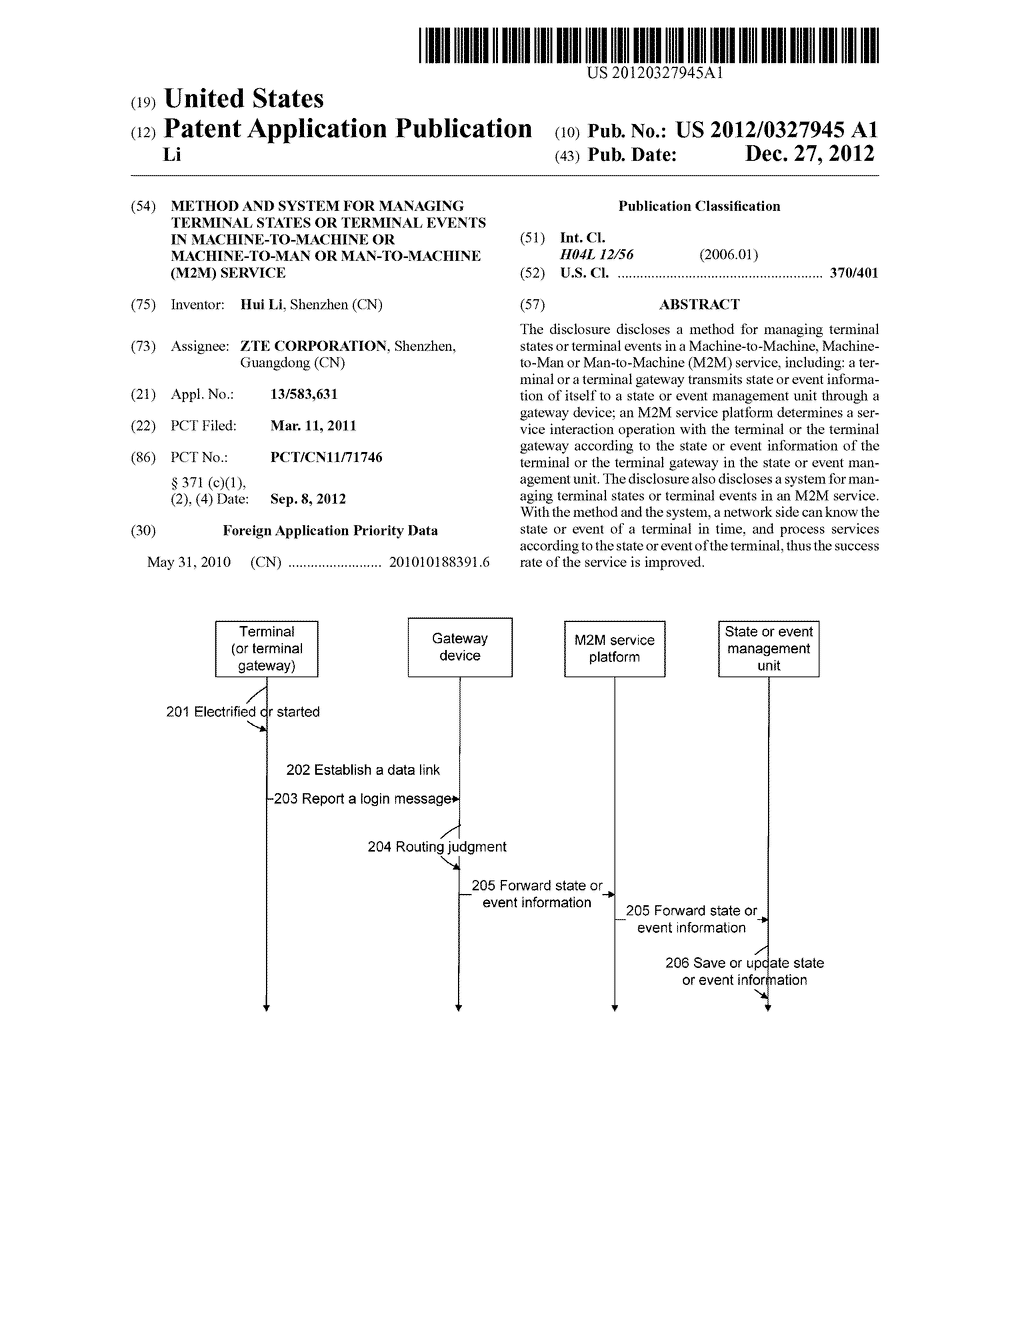 Method and system for managing terminal states or terminal events in     machine-to-machine or machine-to-man or man-to-machine (M2M) service - diagram, schematic, and image 01